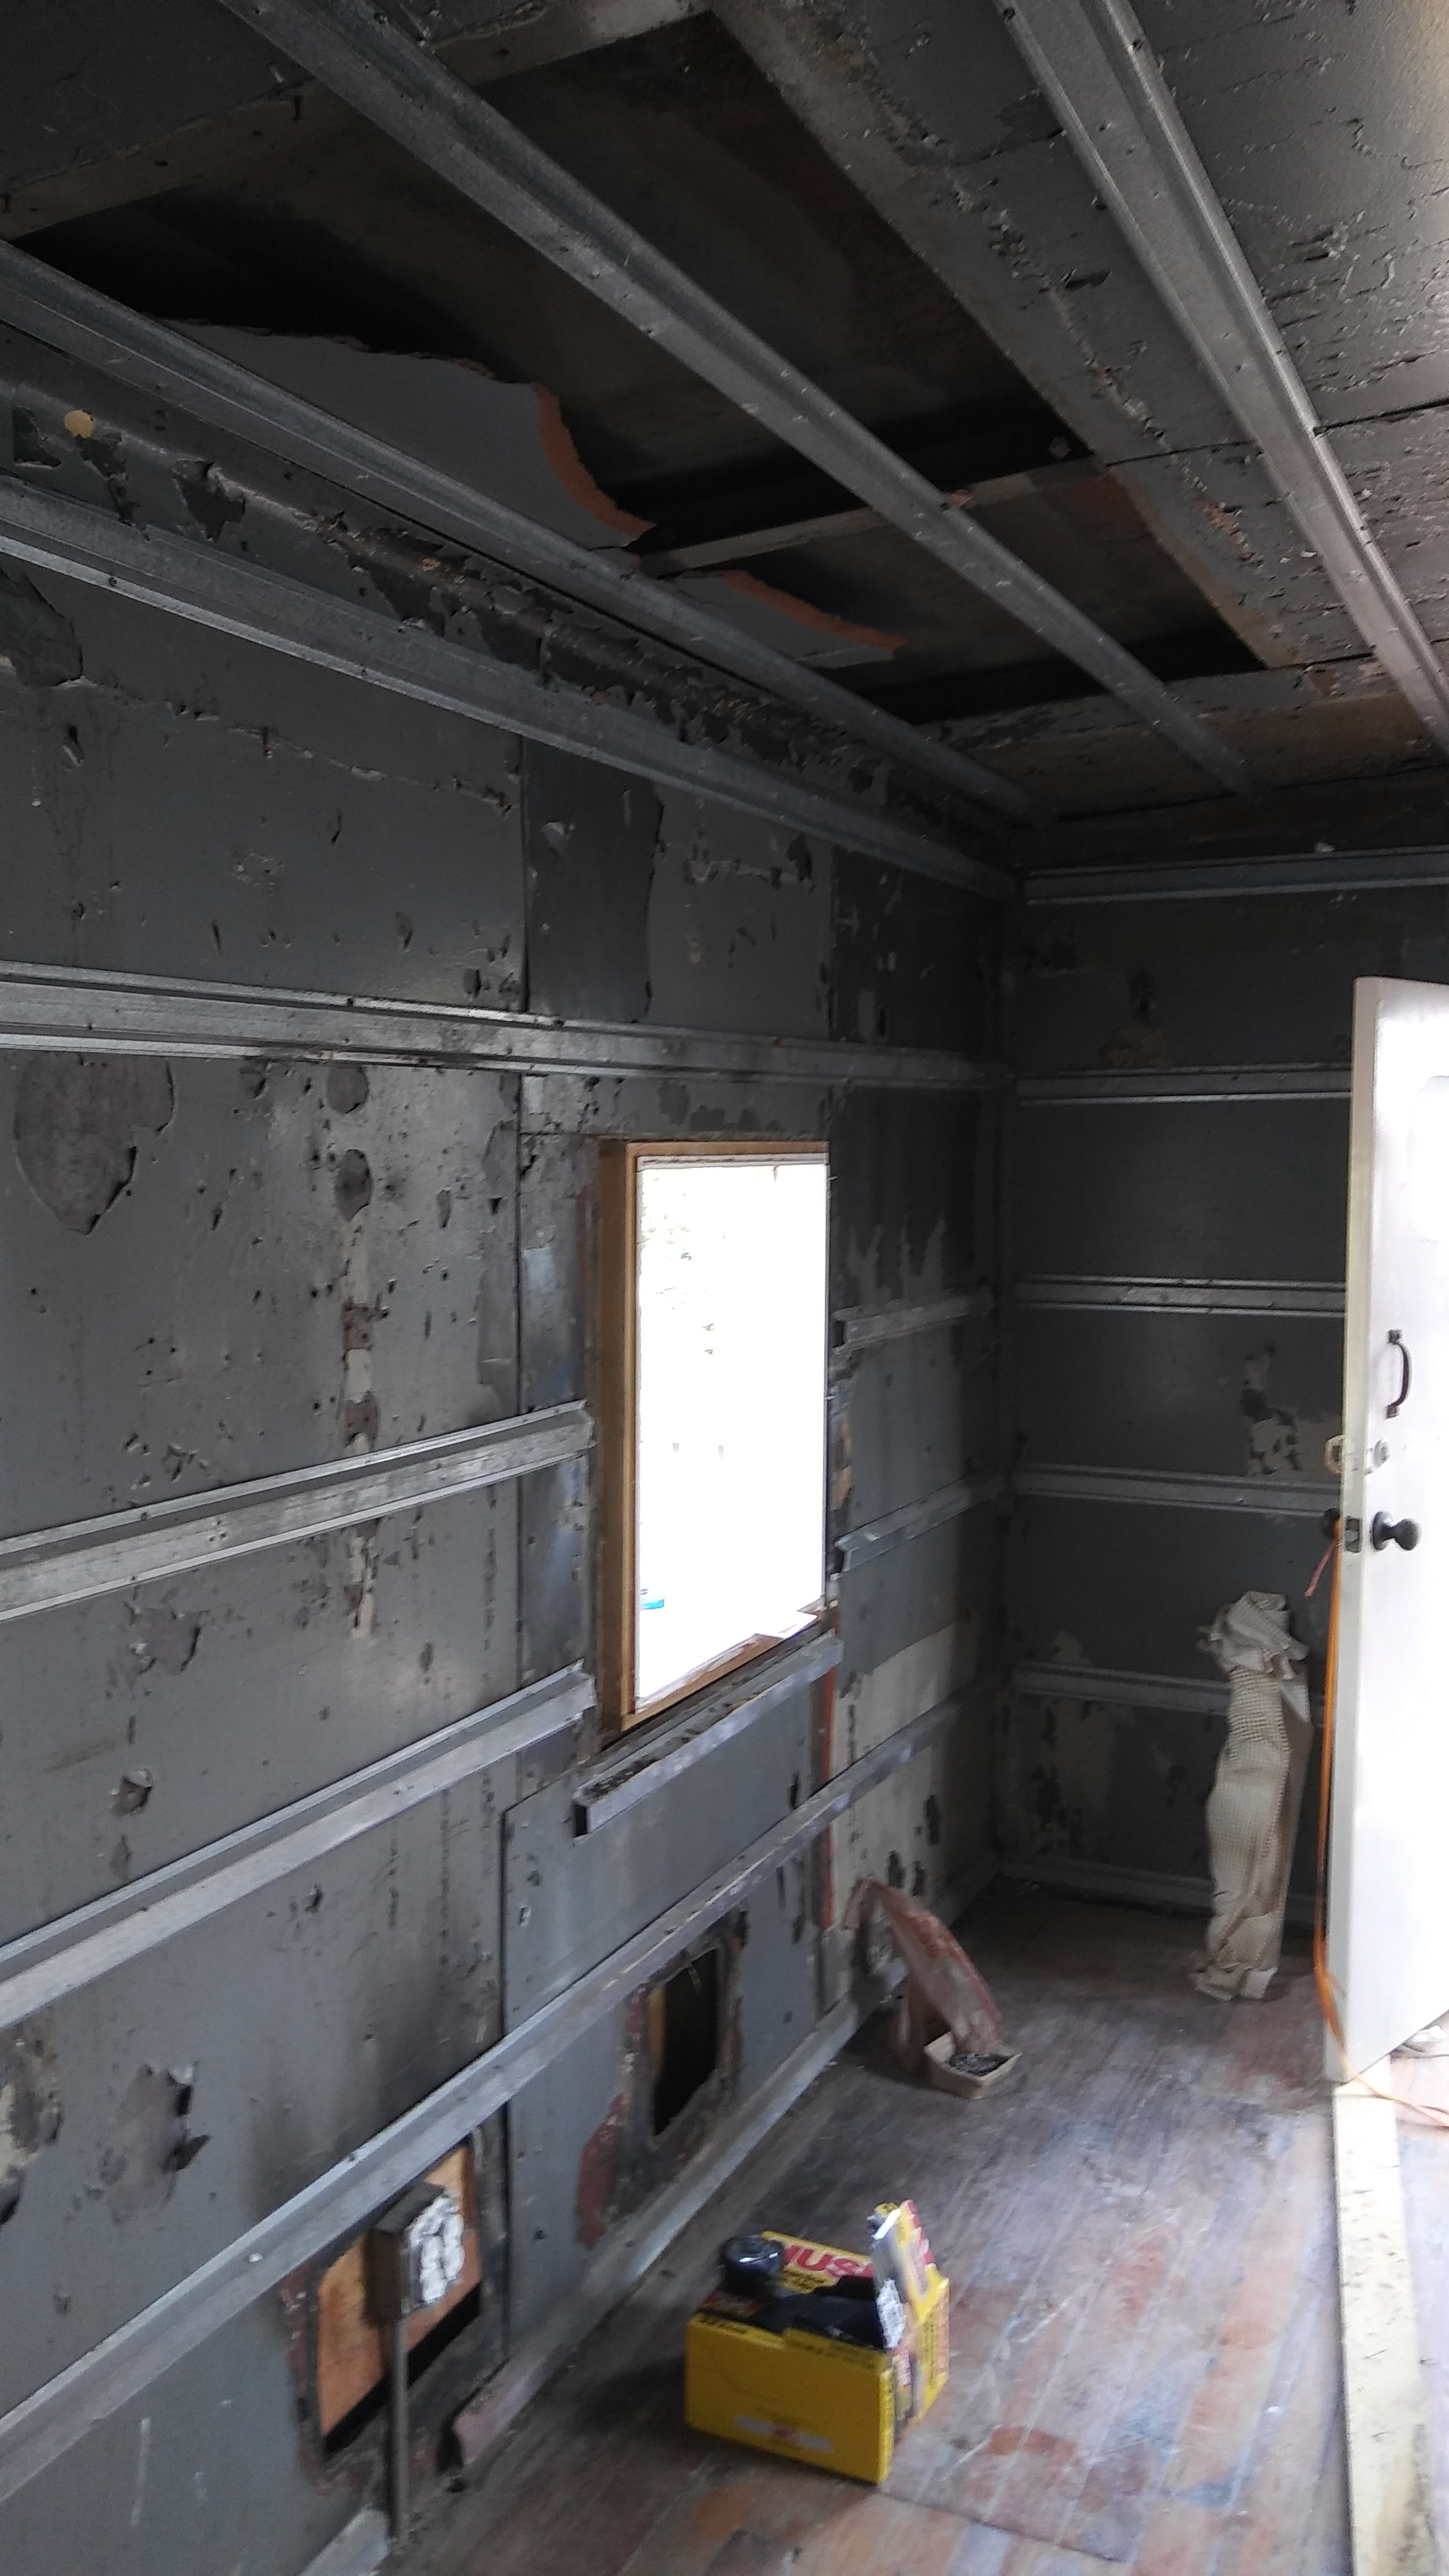 Ceiling and wall detail on the south side of the caboose. The metal studs were added to hang the sheet rock. There is space for blow-in insulation in between the ceiling, wall and external wall/roof. There was also a lot of evidence of rodent life.